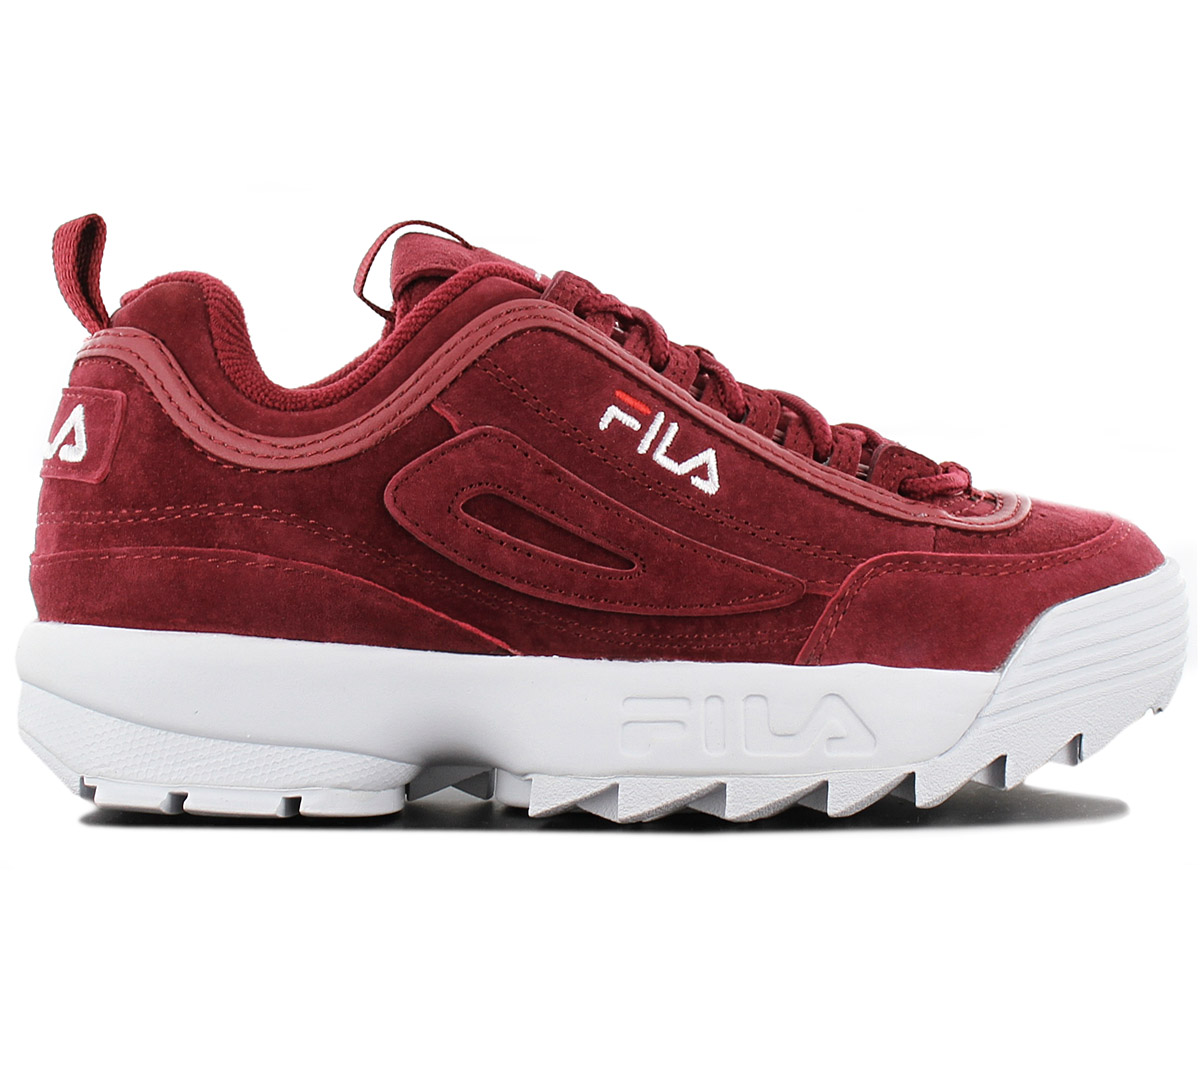 453fb29c83ce13 Fila Disruptor Leather S LOW Cr Ladies Sneaker Shoes Leather Red ...